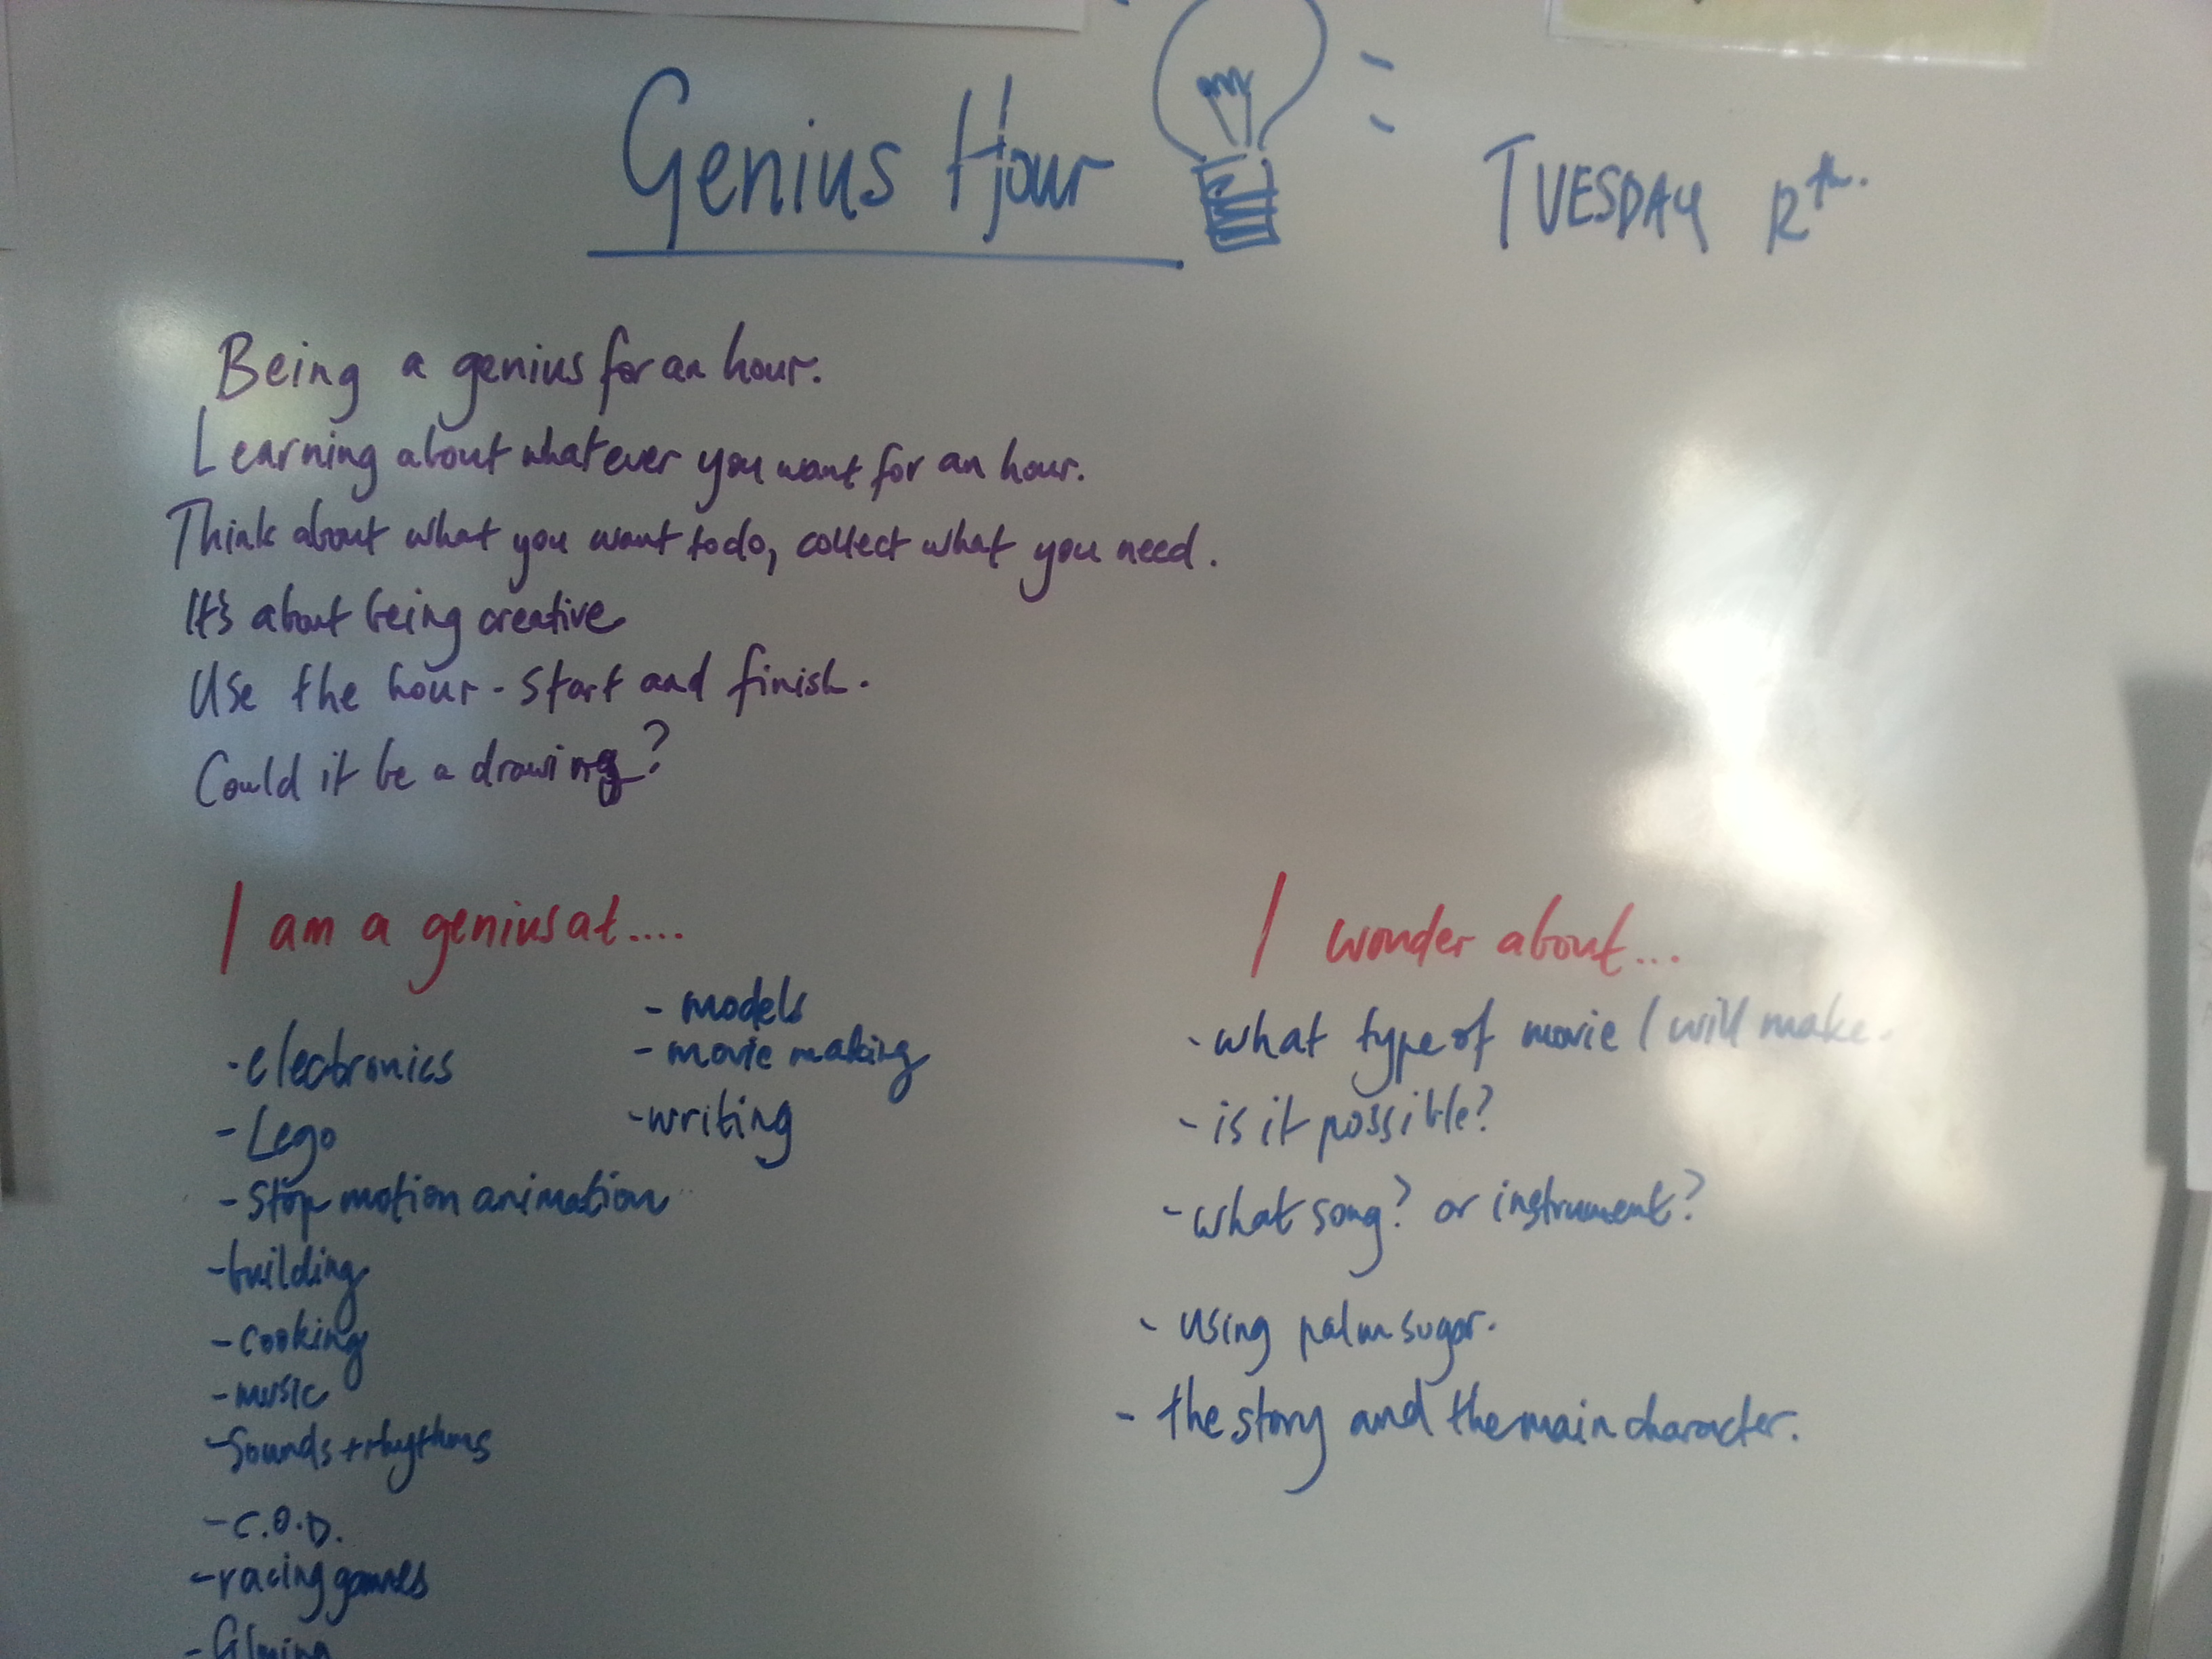 Is Genius Hour A Way To Get Into Rhizomatic Learning